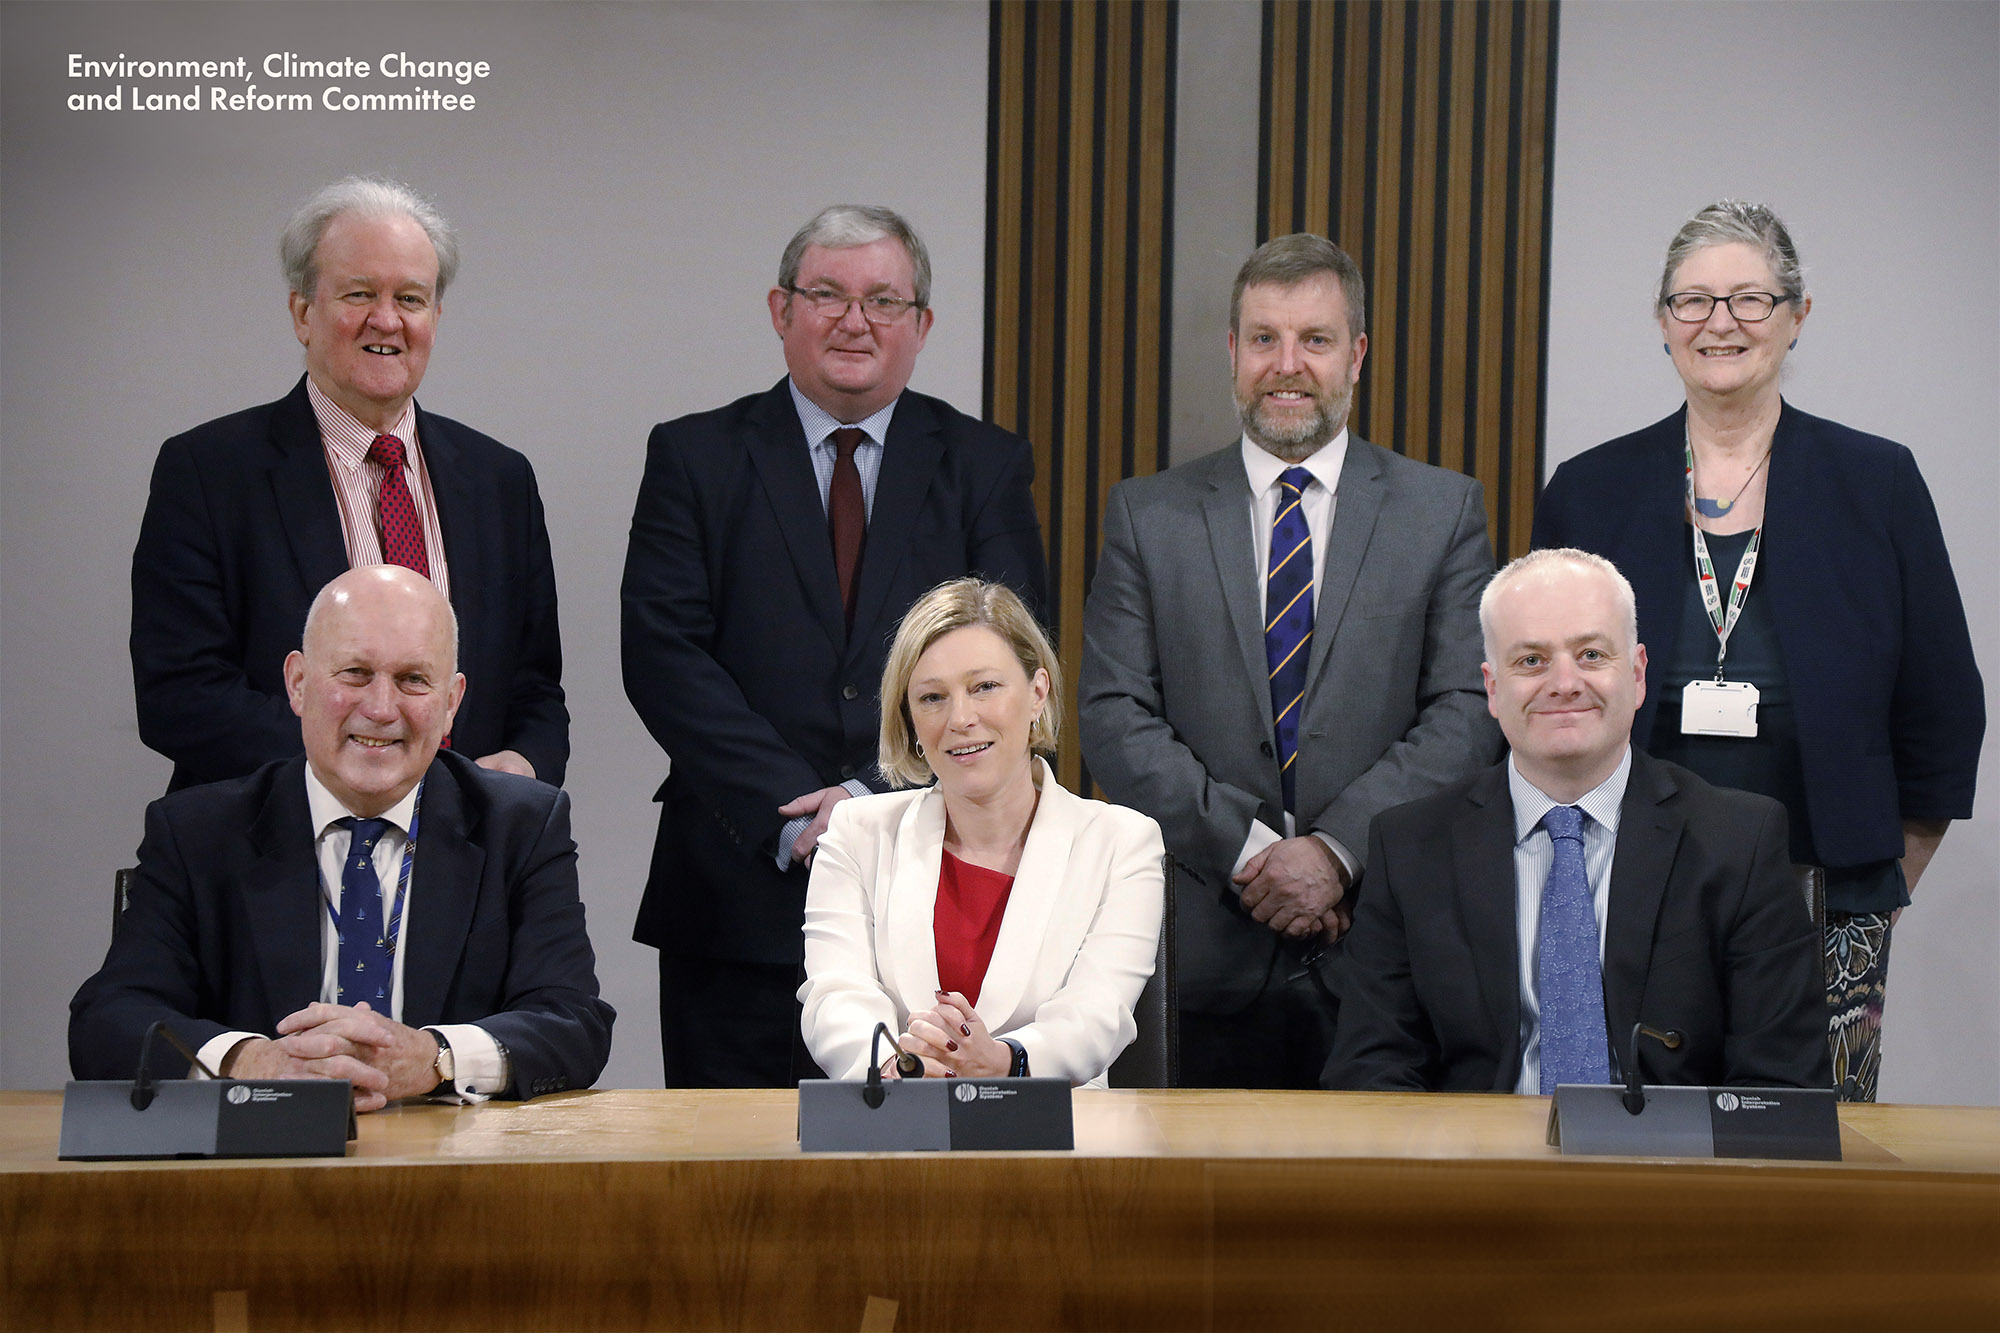 Current Committee membership. Top (L-R): Stewart Stevenson MSP; Angus MacDonald MSP; Finlay Carson MSP and Claudia Beamish. Bottom (L-R): John Scott MSP (Deputy Convener); Gillian Martin MSP (Convener) and Mark Ruskell MSP.